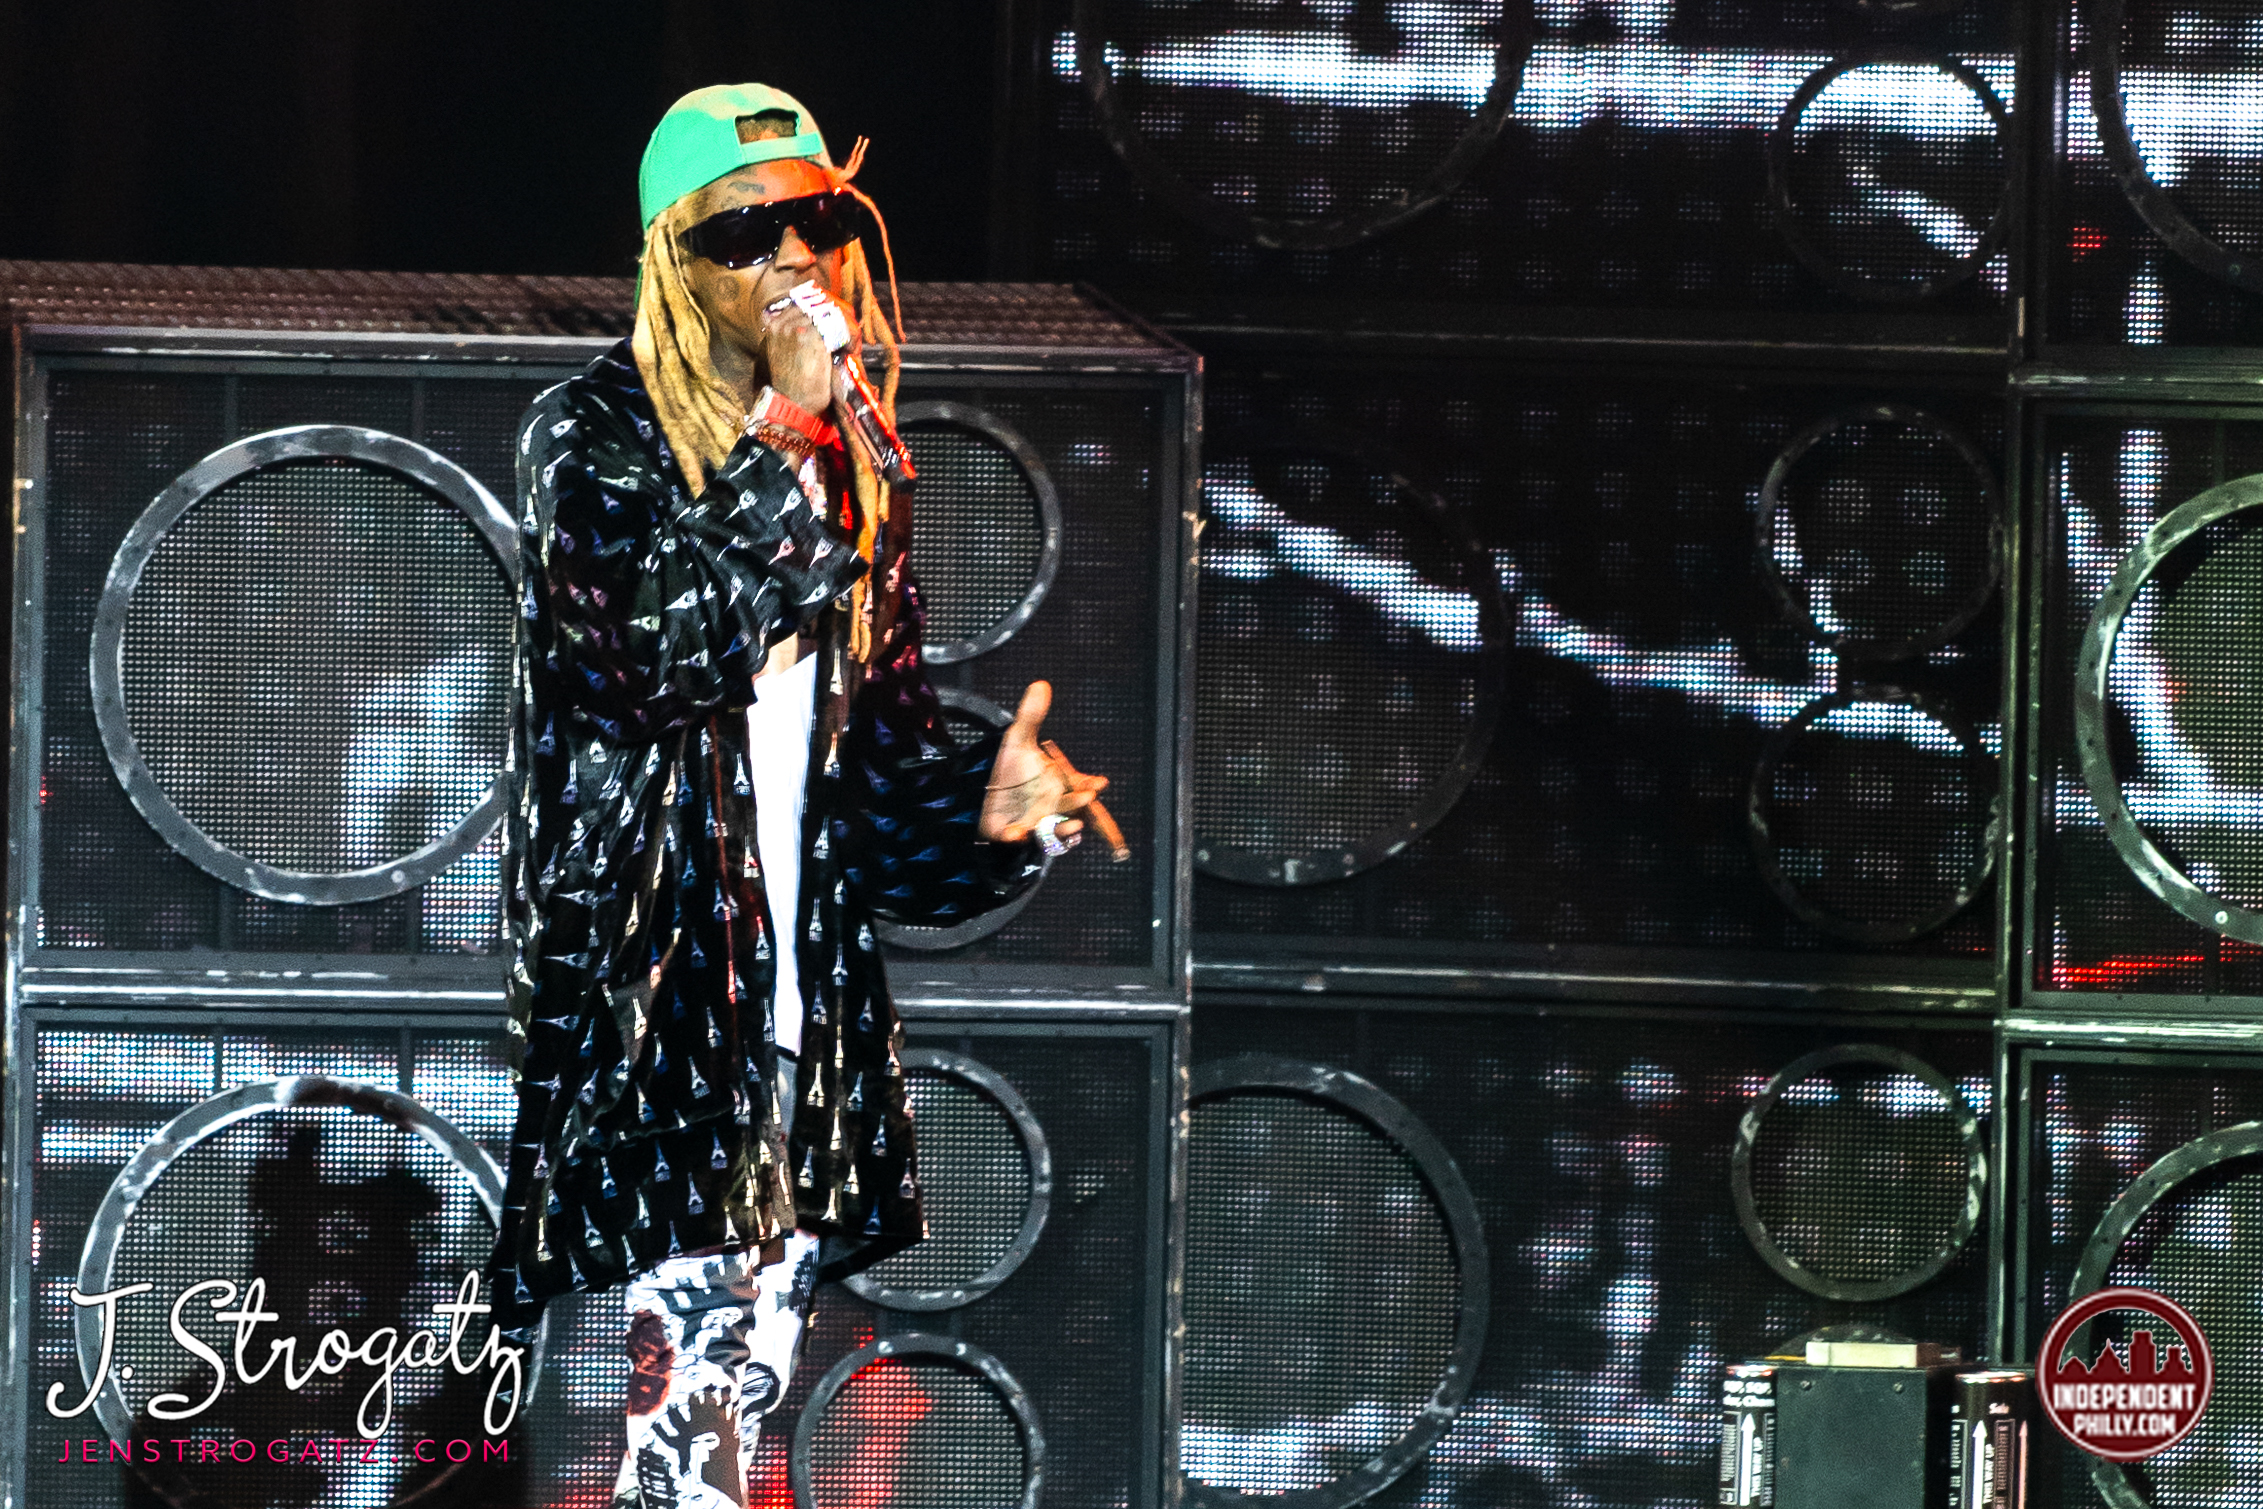 Photo of lil Wayne on stage, performing live at BB&T Pavilion in Camden, NJ in September, 2019